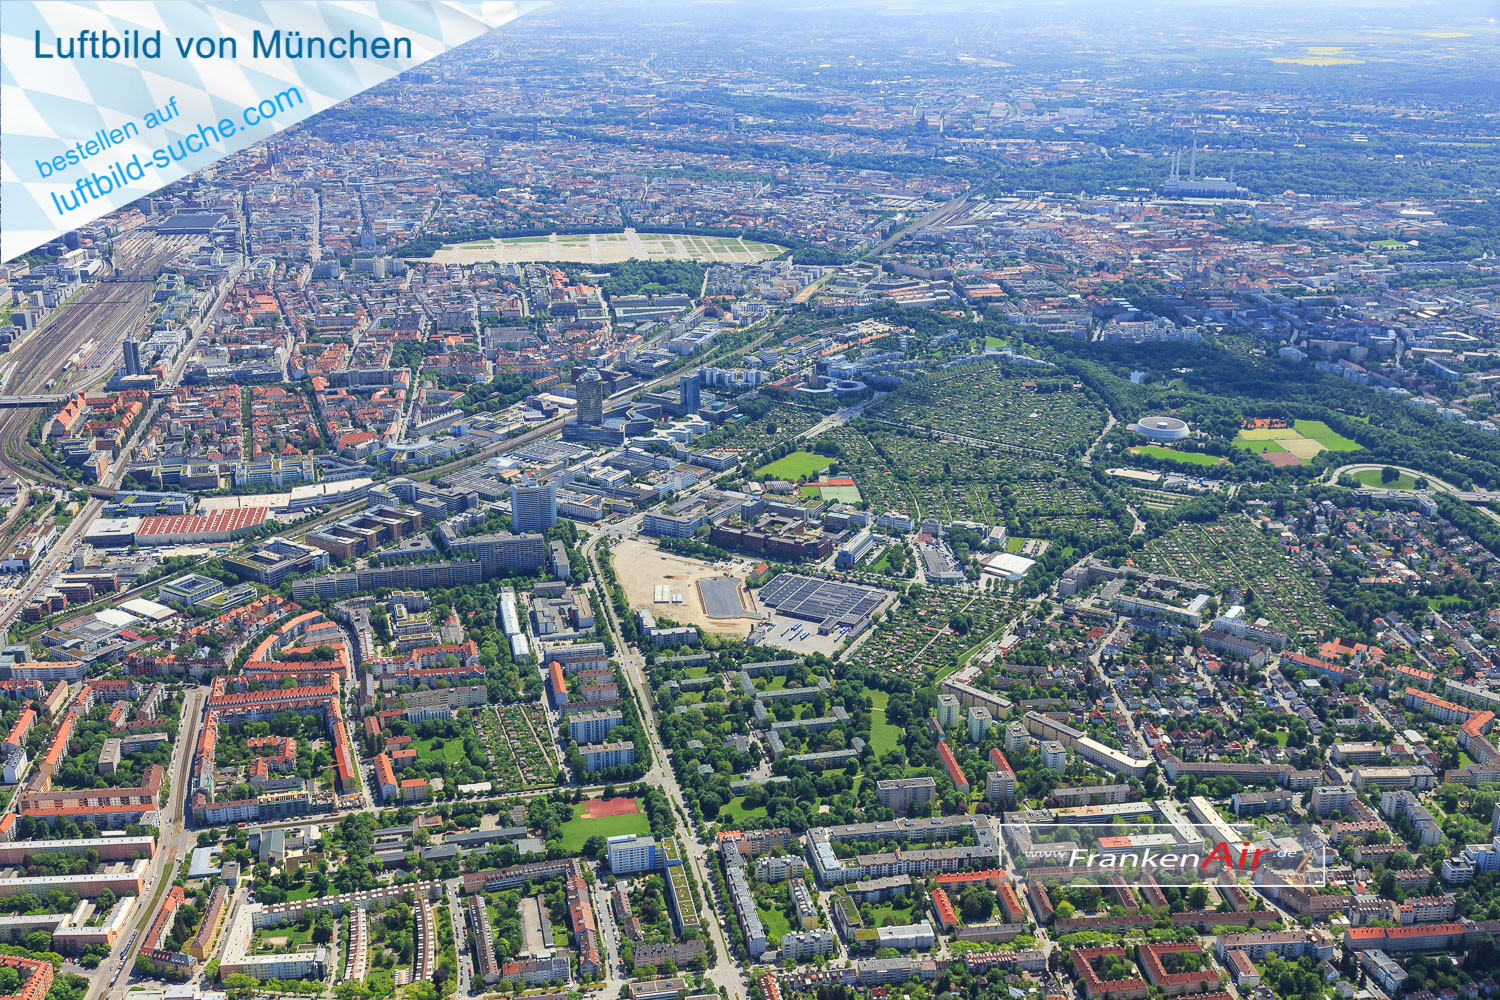 Laim-muenchen-2015-4083